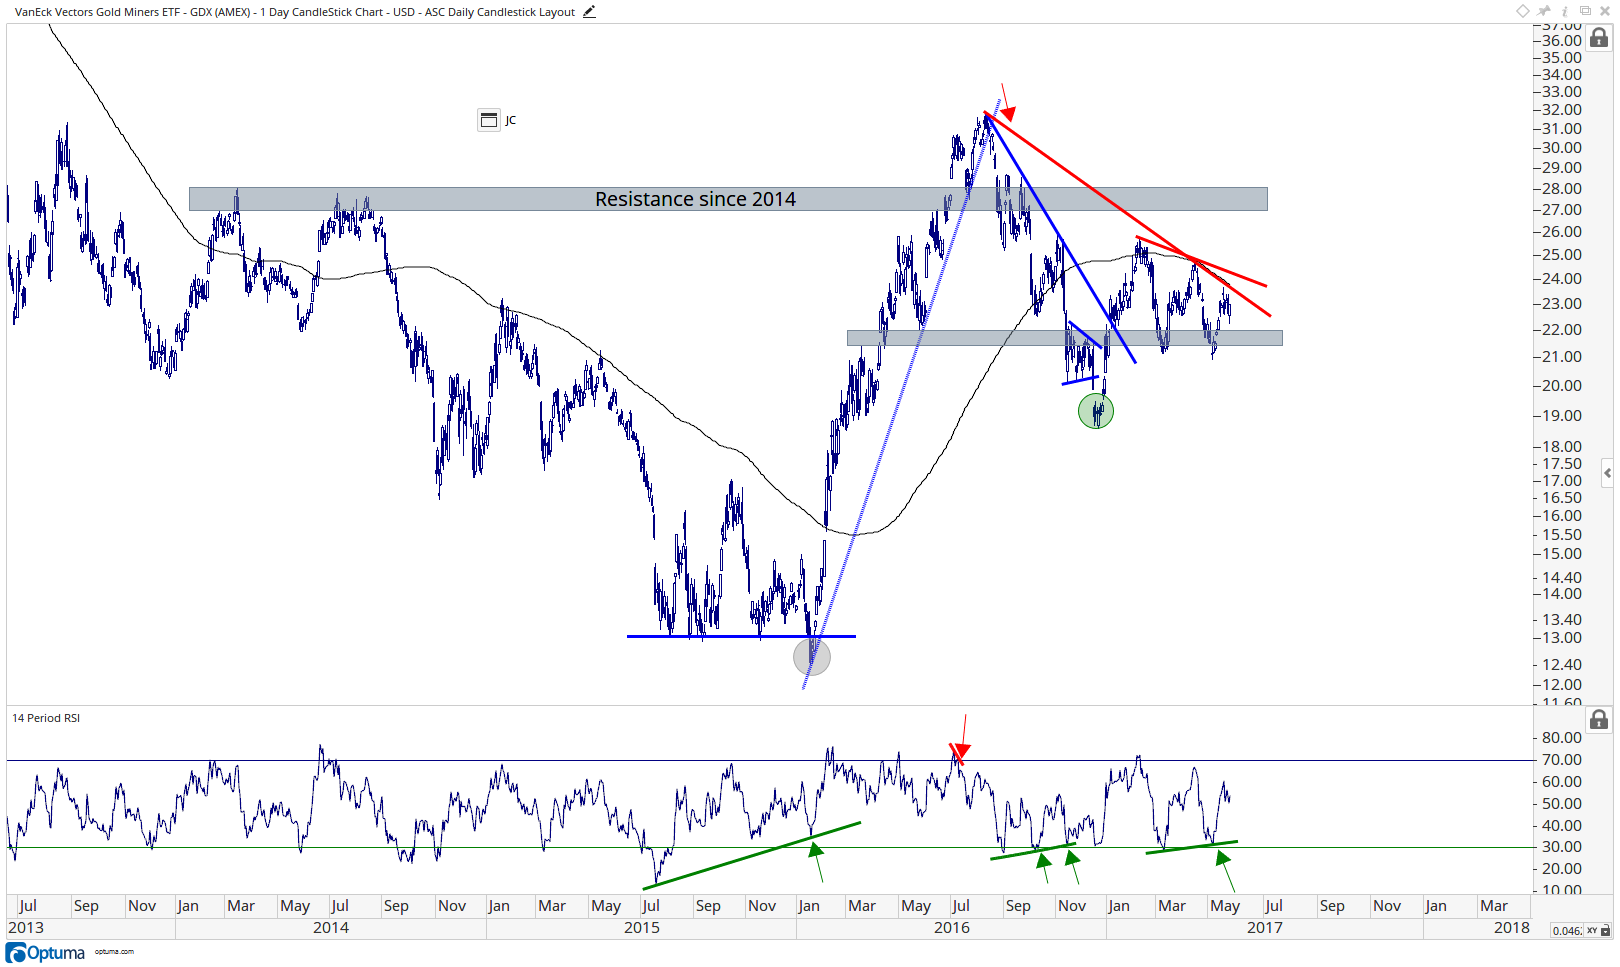 Gold Miners - GDX